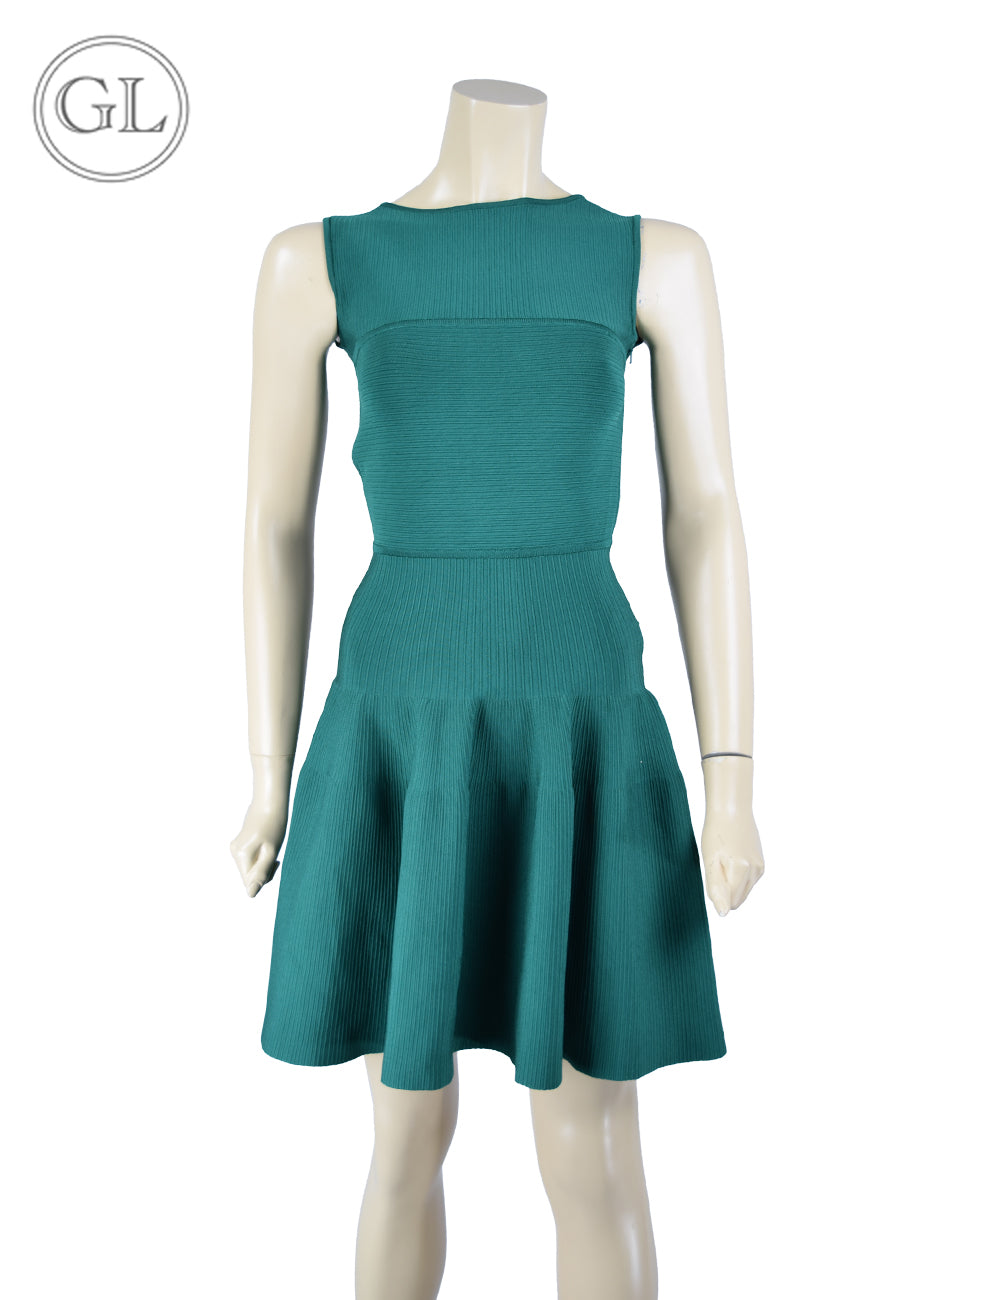 Issa london Green Dress - US 2